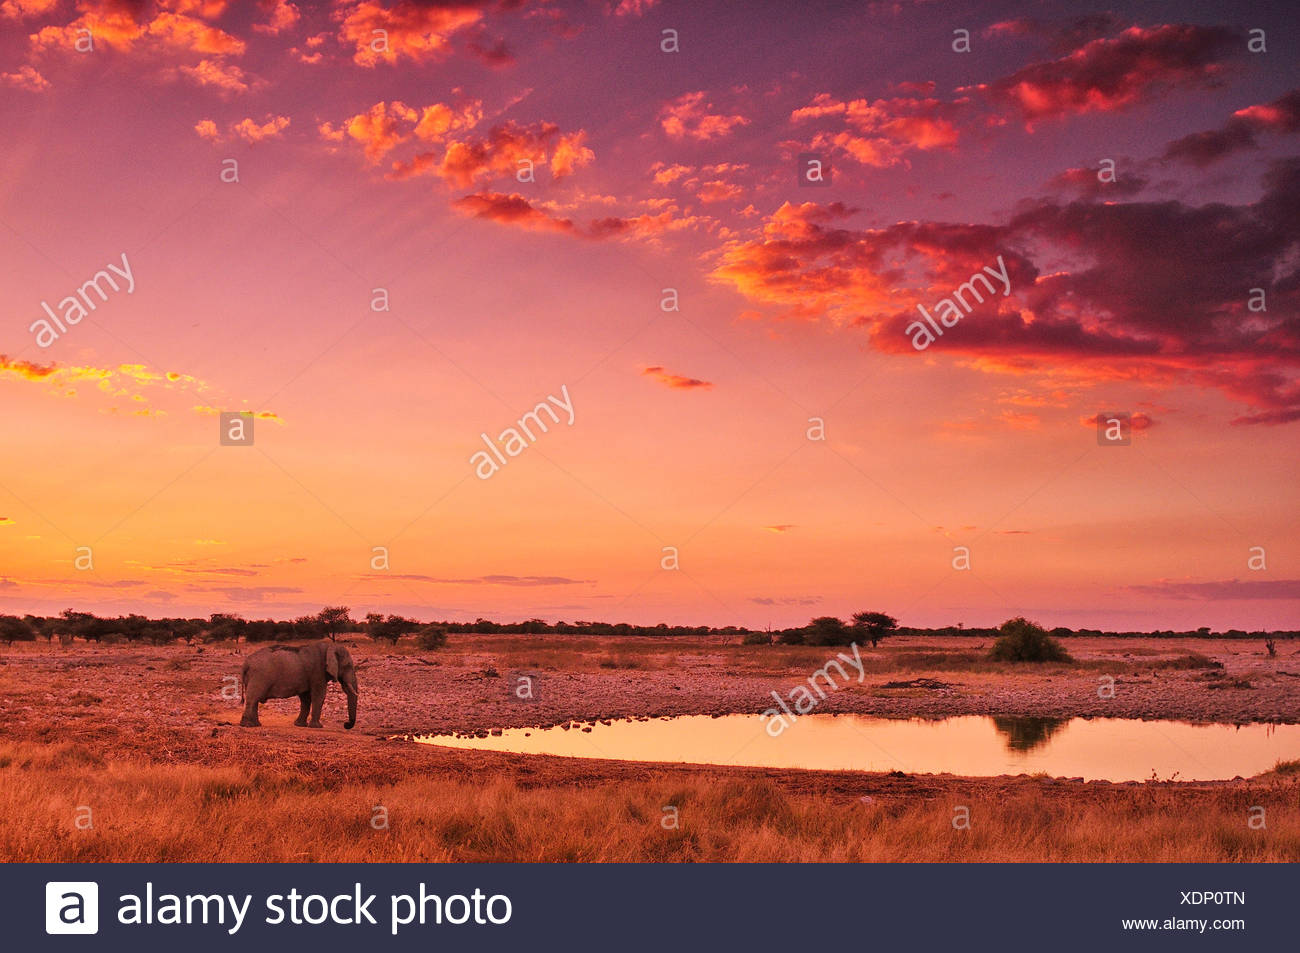 Africa, Namibia, Etosha, National Park, sunset, elephant, animal, waterhole, safari, animal, wildlife, red, Loxodonta african, a - Stock Image